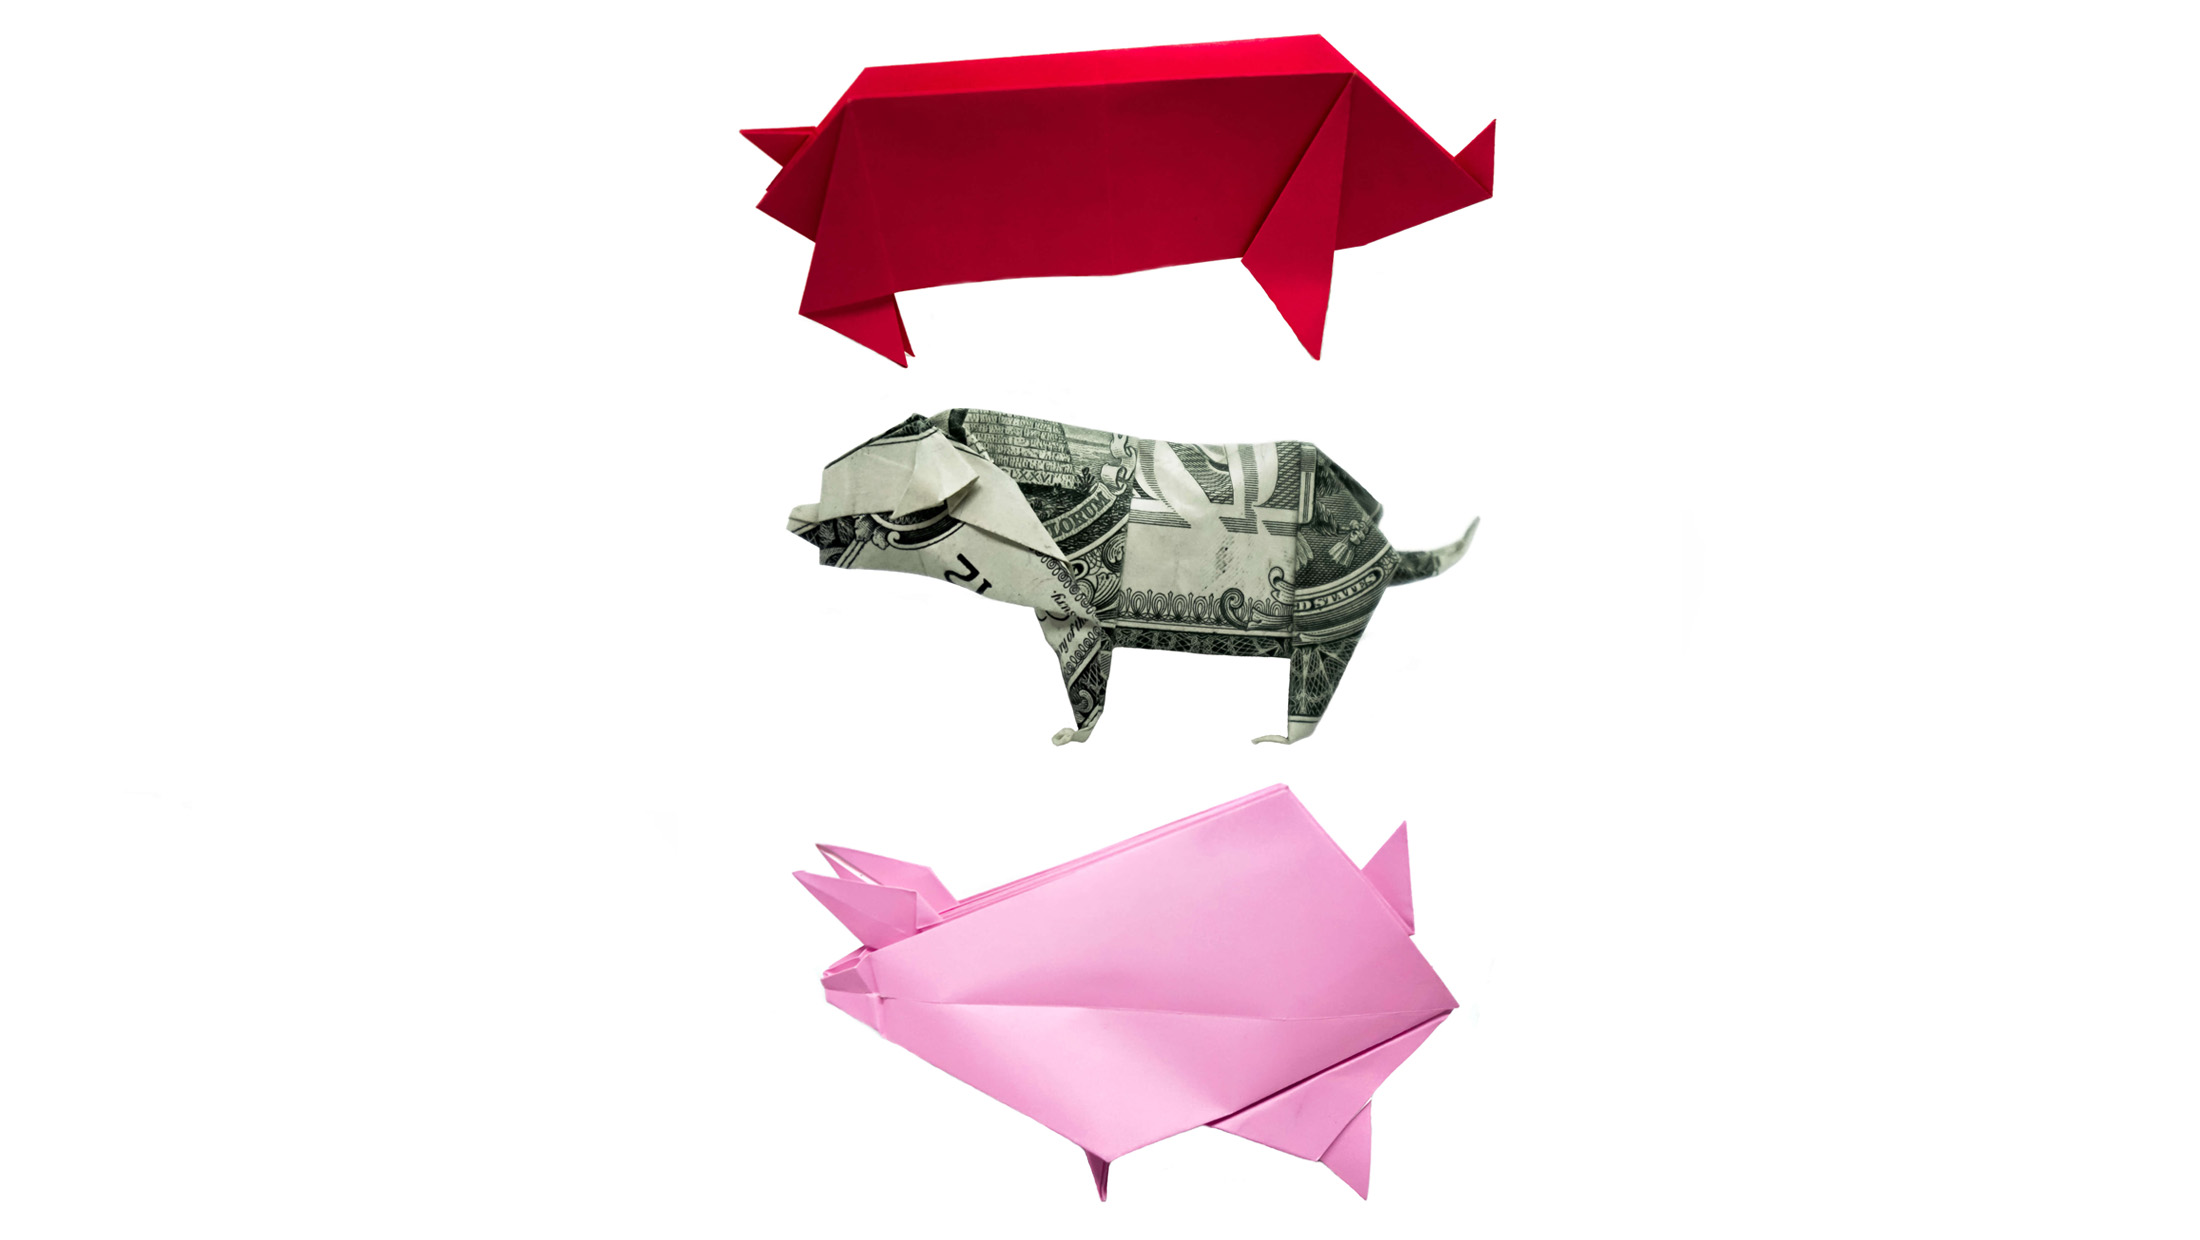 Money Origami Fish Instructions | How to Fold a Dollar Bill Fish ... | 1240x2200